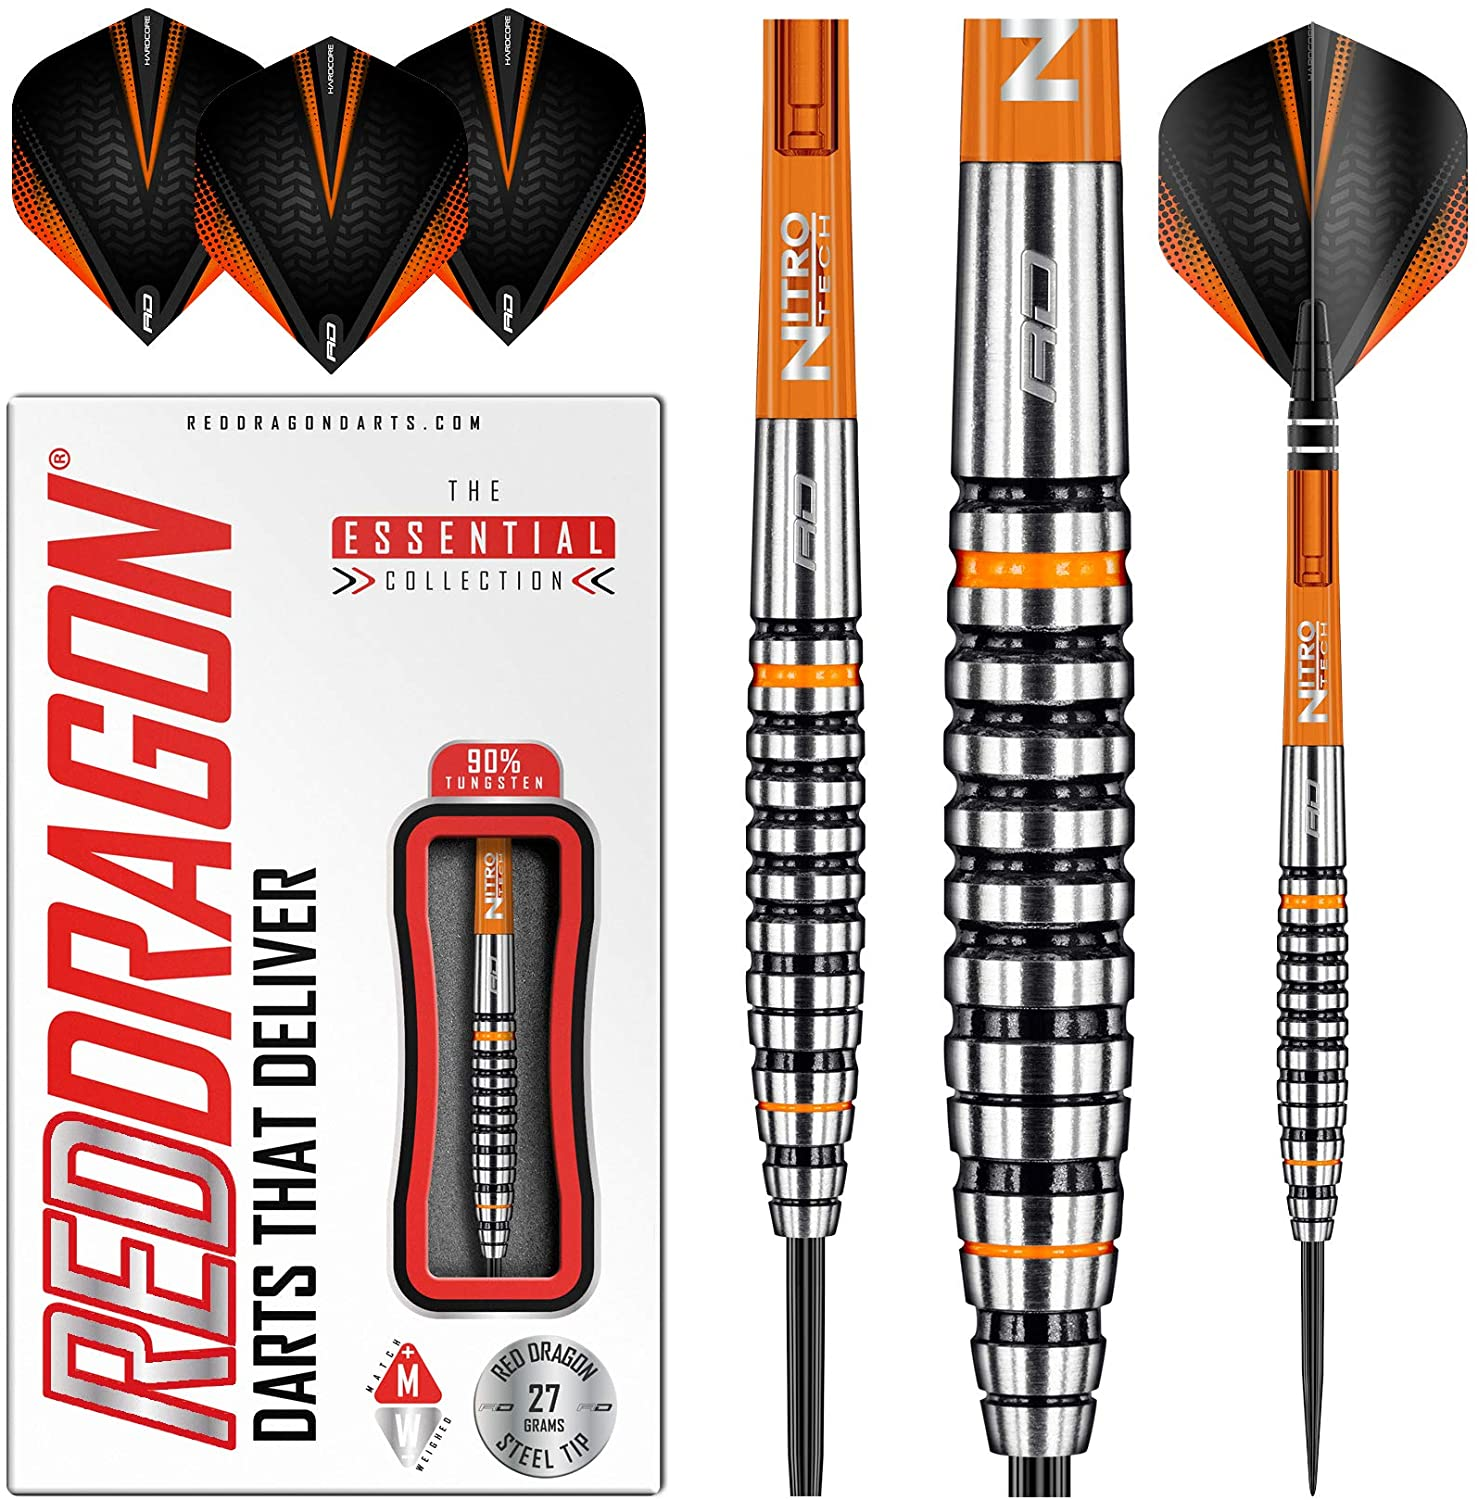 RED DRAGON Amberjack 14: 27g Tungsten Darts Set with Flights and Stems